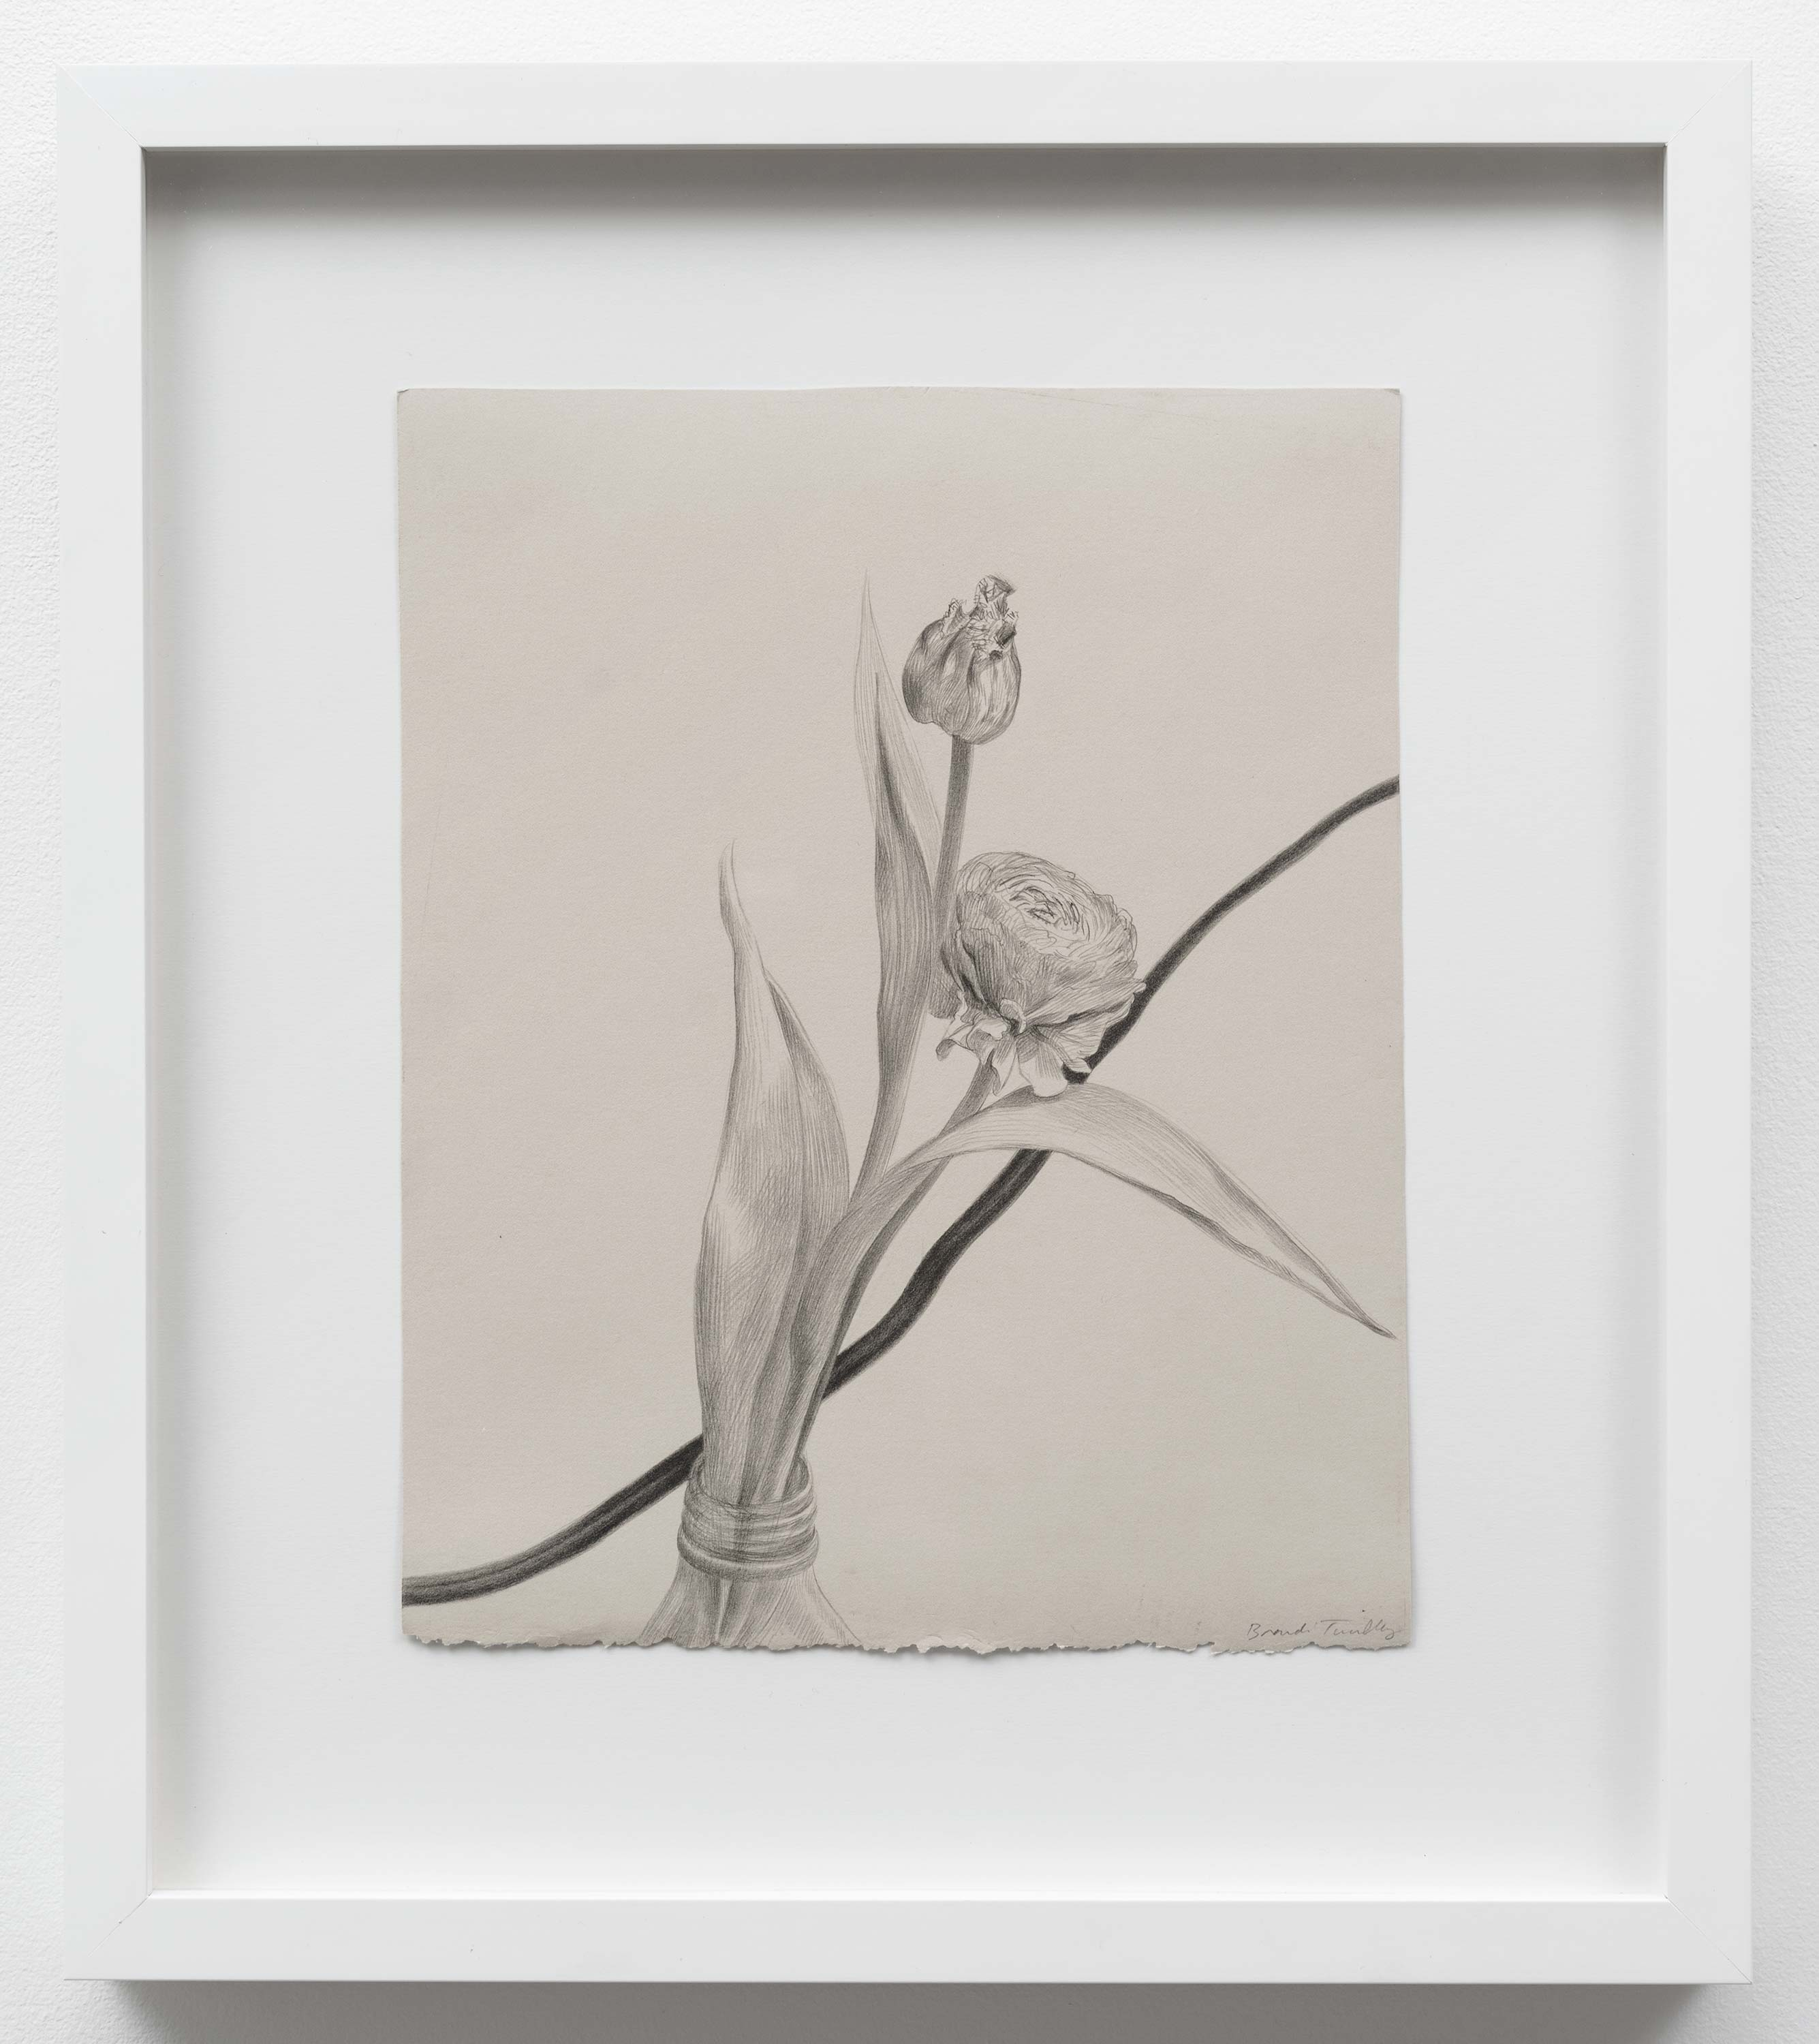 Brandi Twilley<br>Flowers with Cord I<br>2014<br>Graphite on gray paper<br>9 x 11.25 (23 x 26.5 cm)